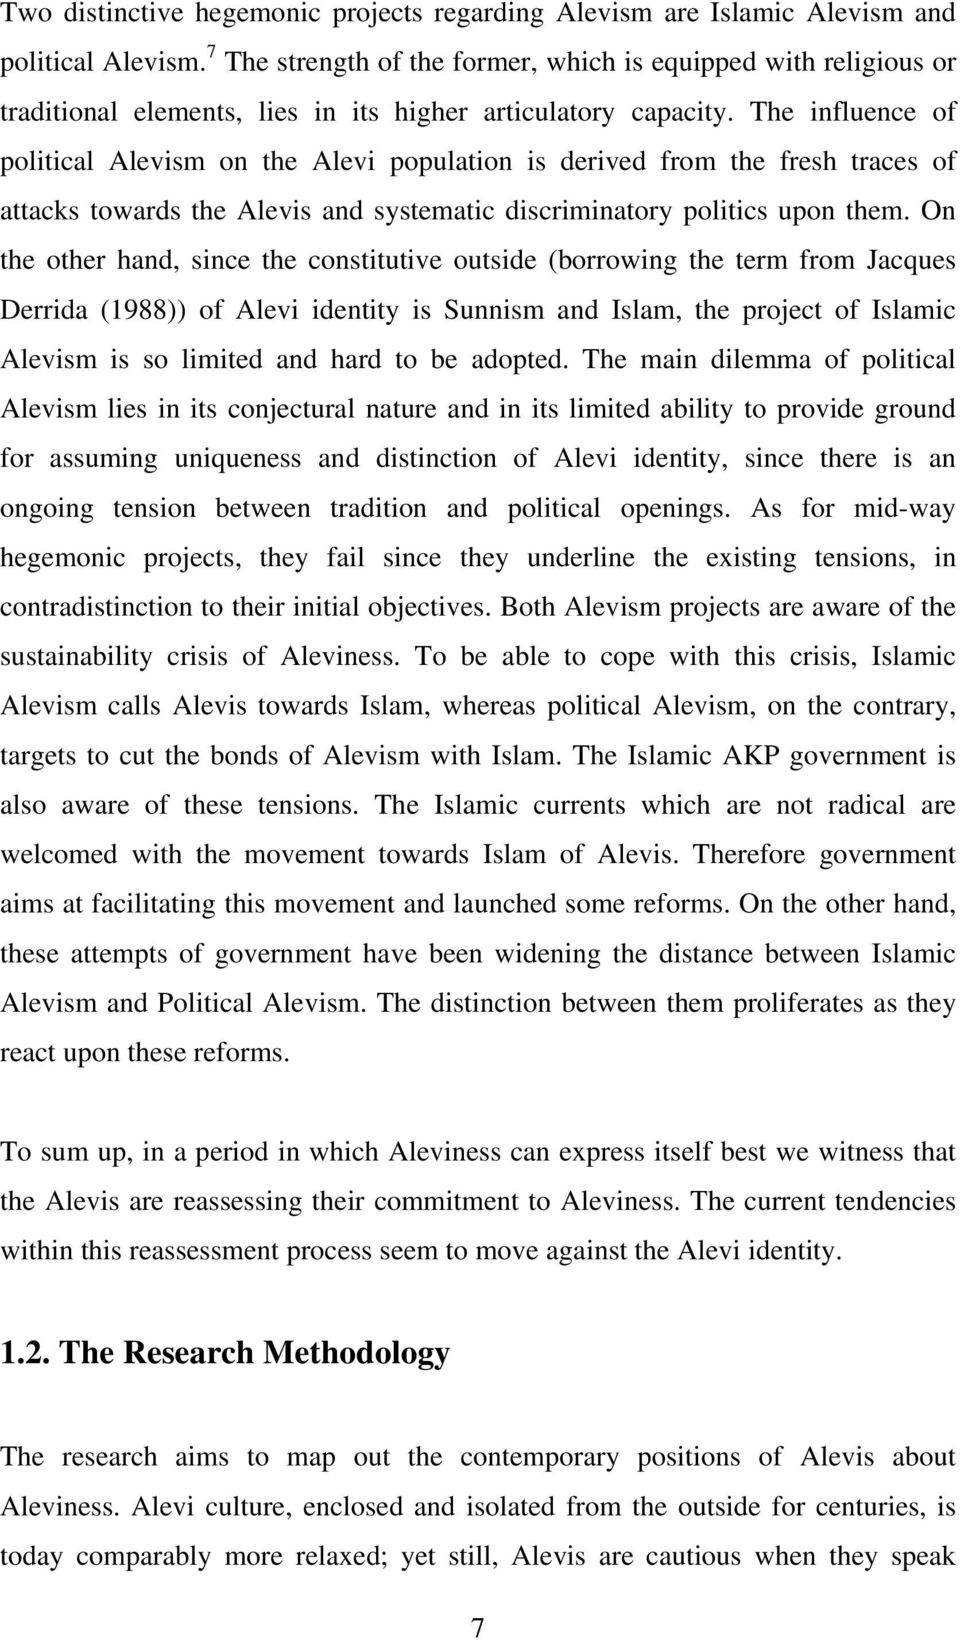 The influence of political Alevism on the Alevi population is derived from the fresh traces of attacks towards the Alevis and systematic discriminatory politics upon them.